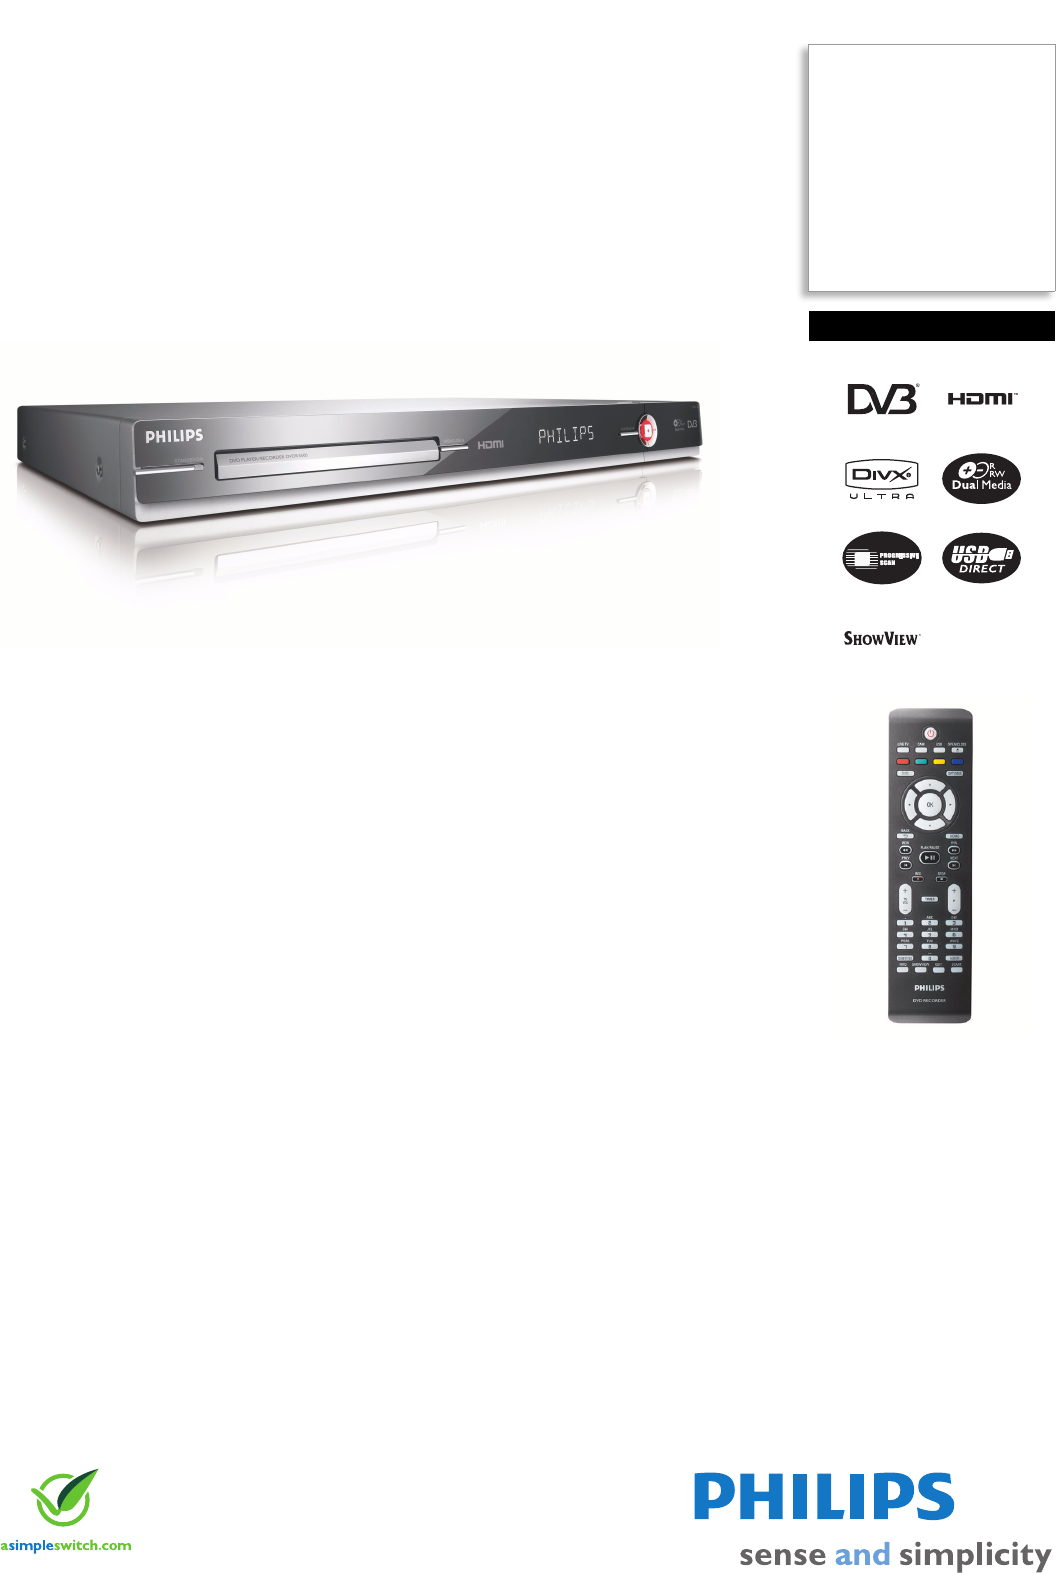 Philips DVDR5500 DVD Player User Manual